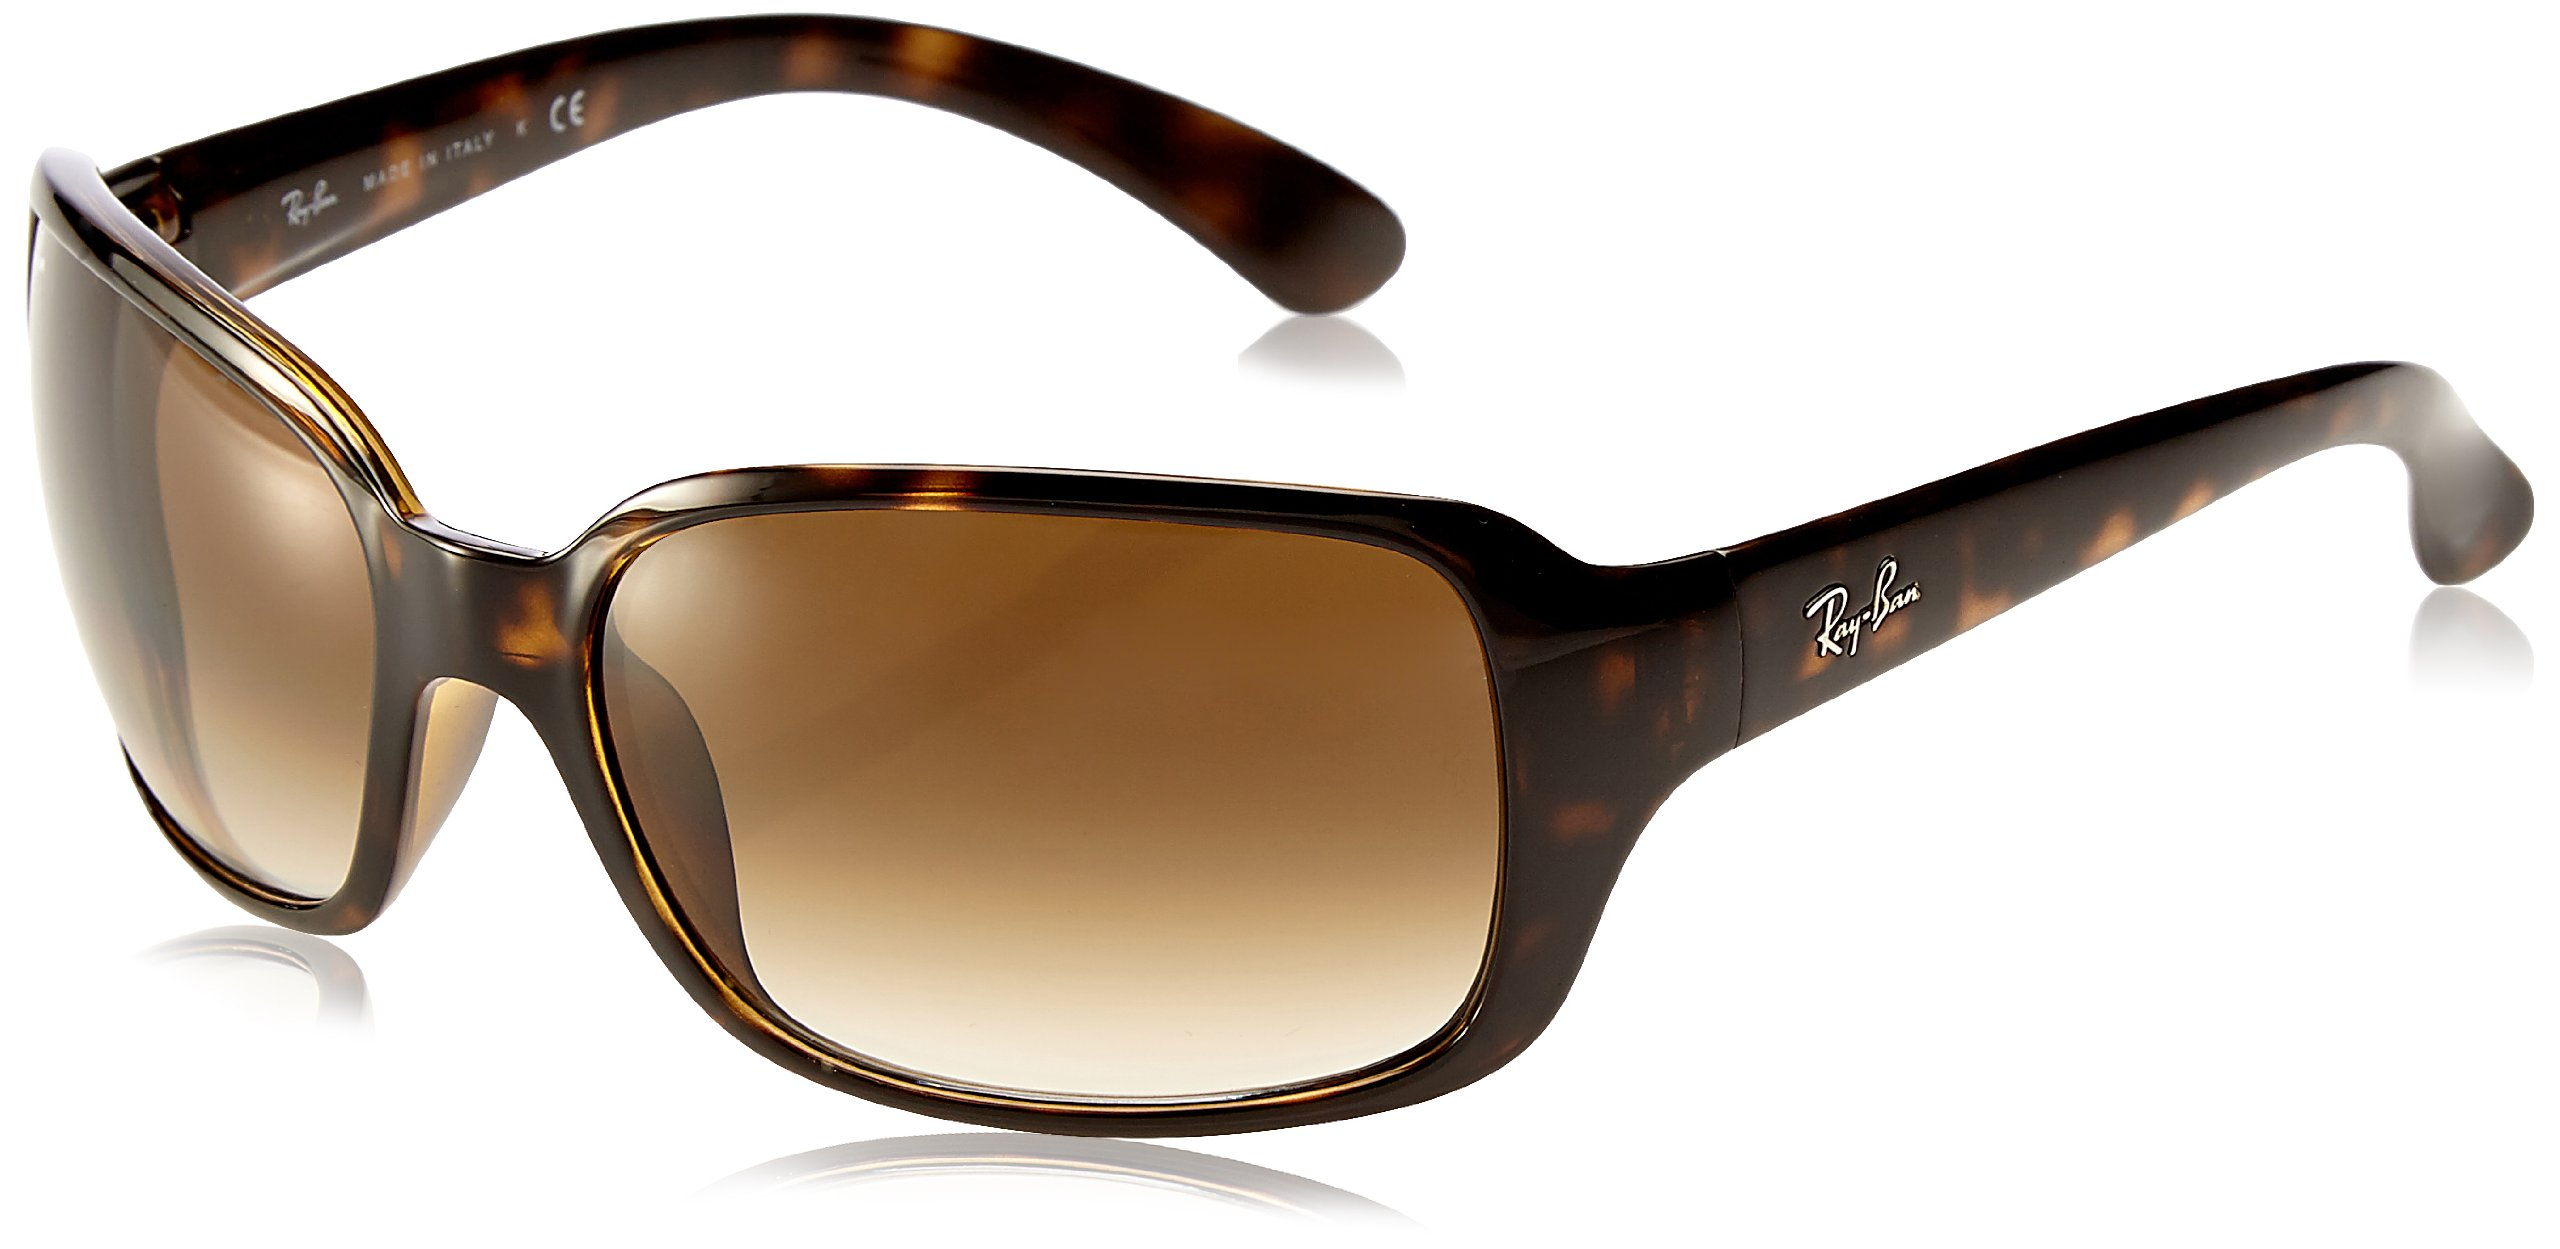 Ray-Ban Women's Rb4068 Square Sunglasses, Light Havana, 60 mm